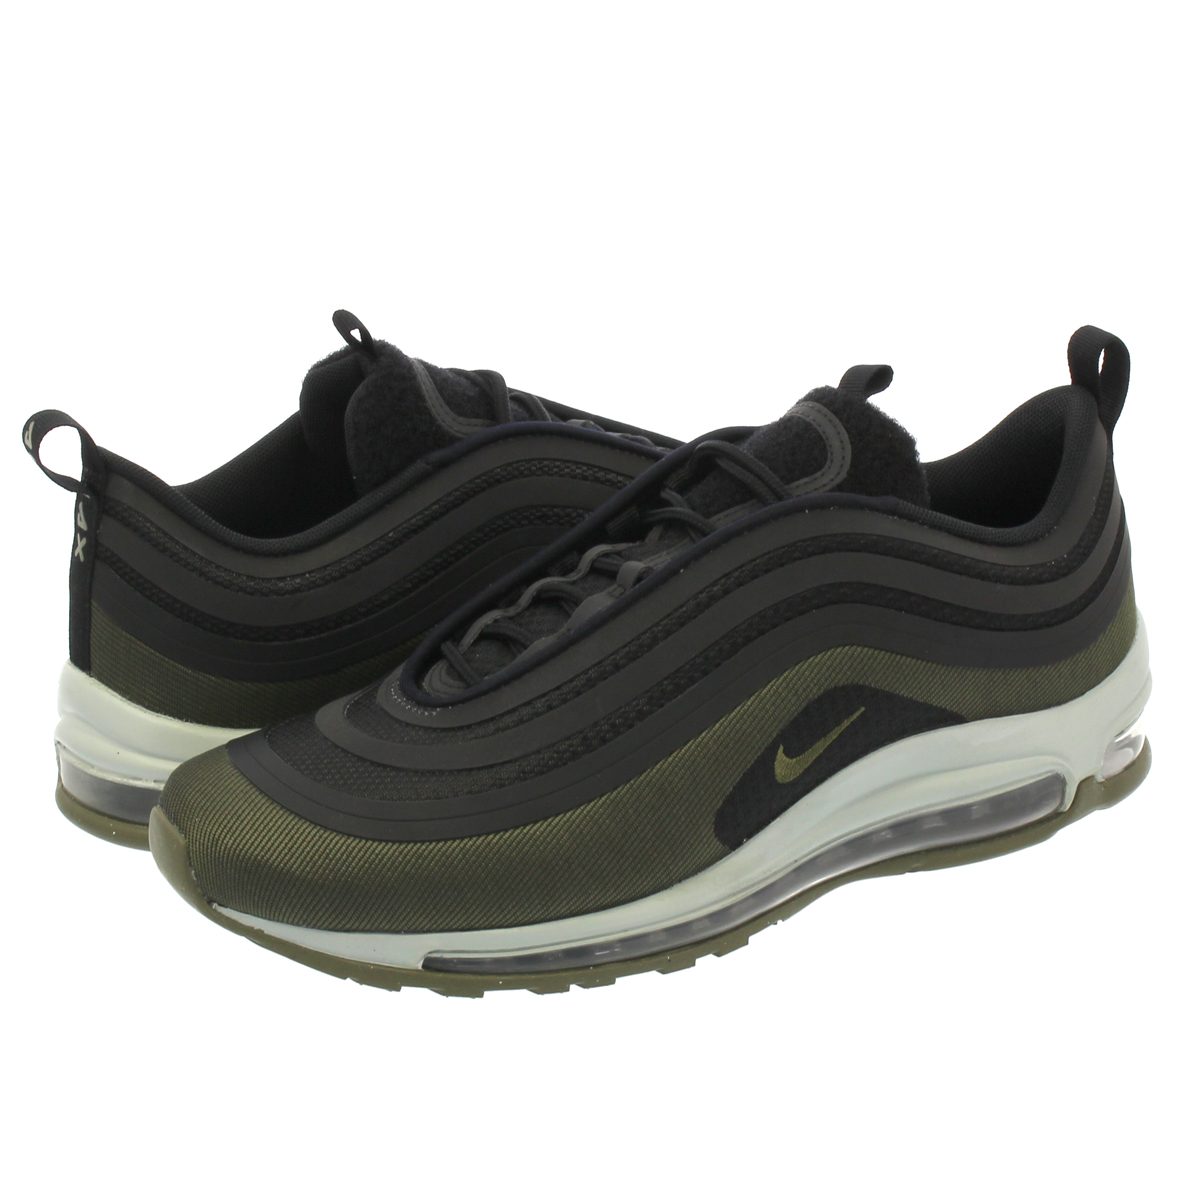 3a90d76289 SELECT SHOP LOWTEX: NIKE AIR MAX 97 UL '17 HAL Kie Ney AMAX 97 ultra ...